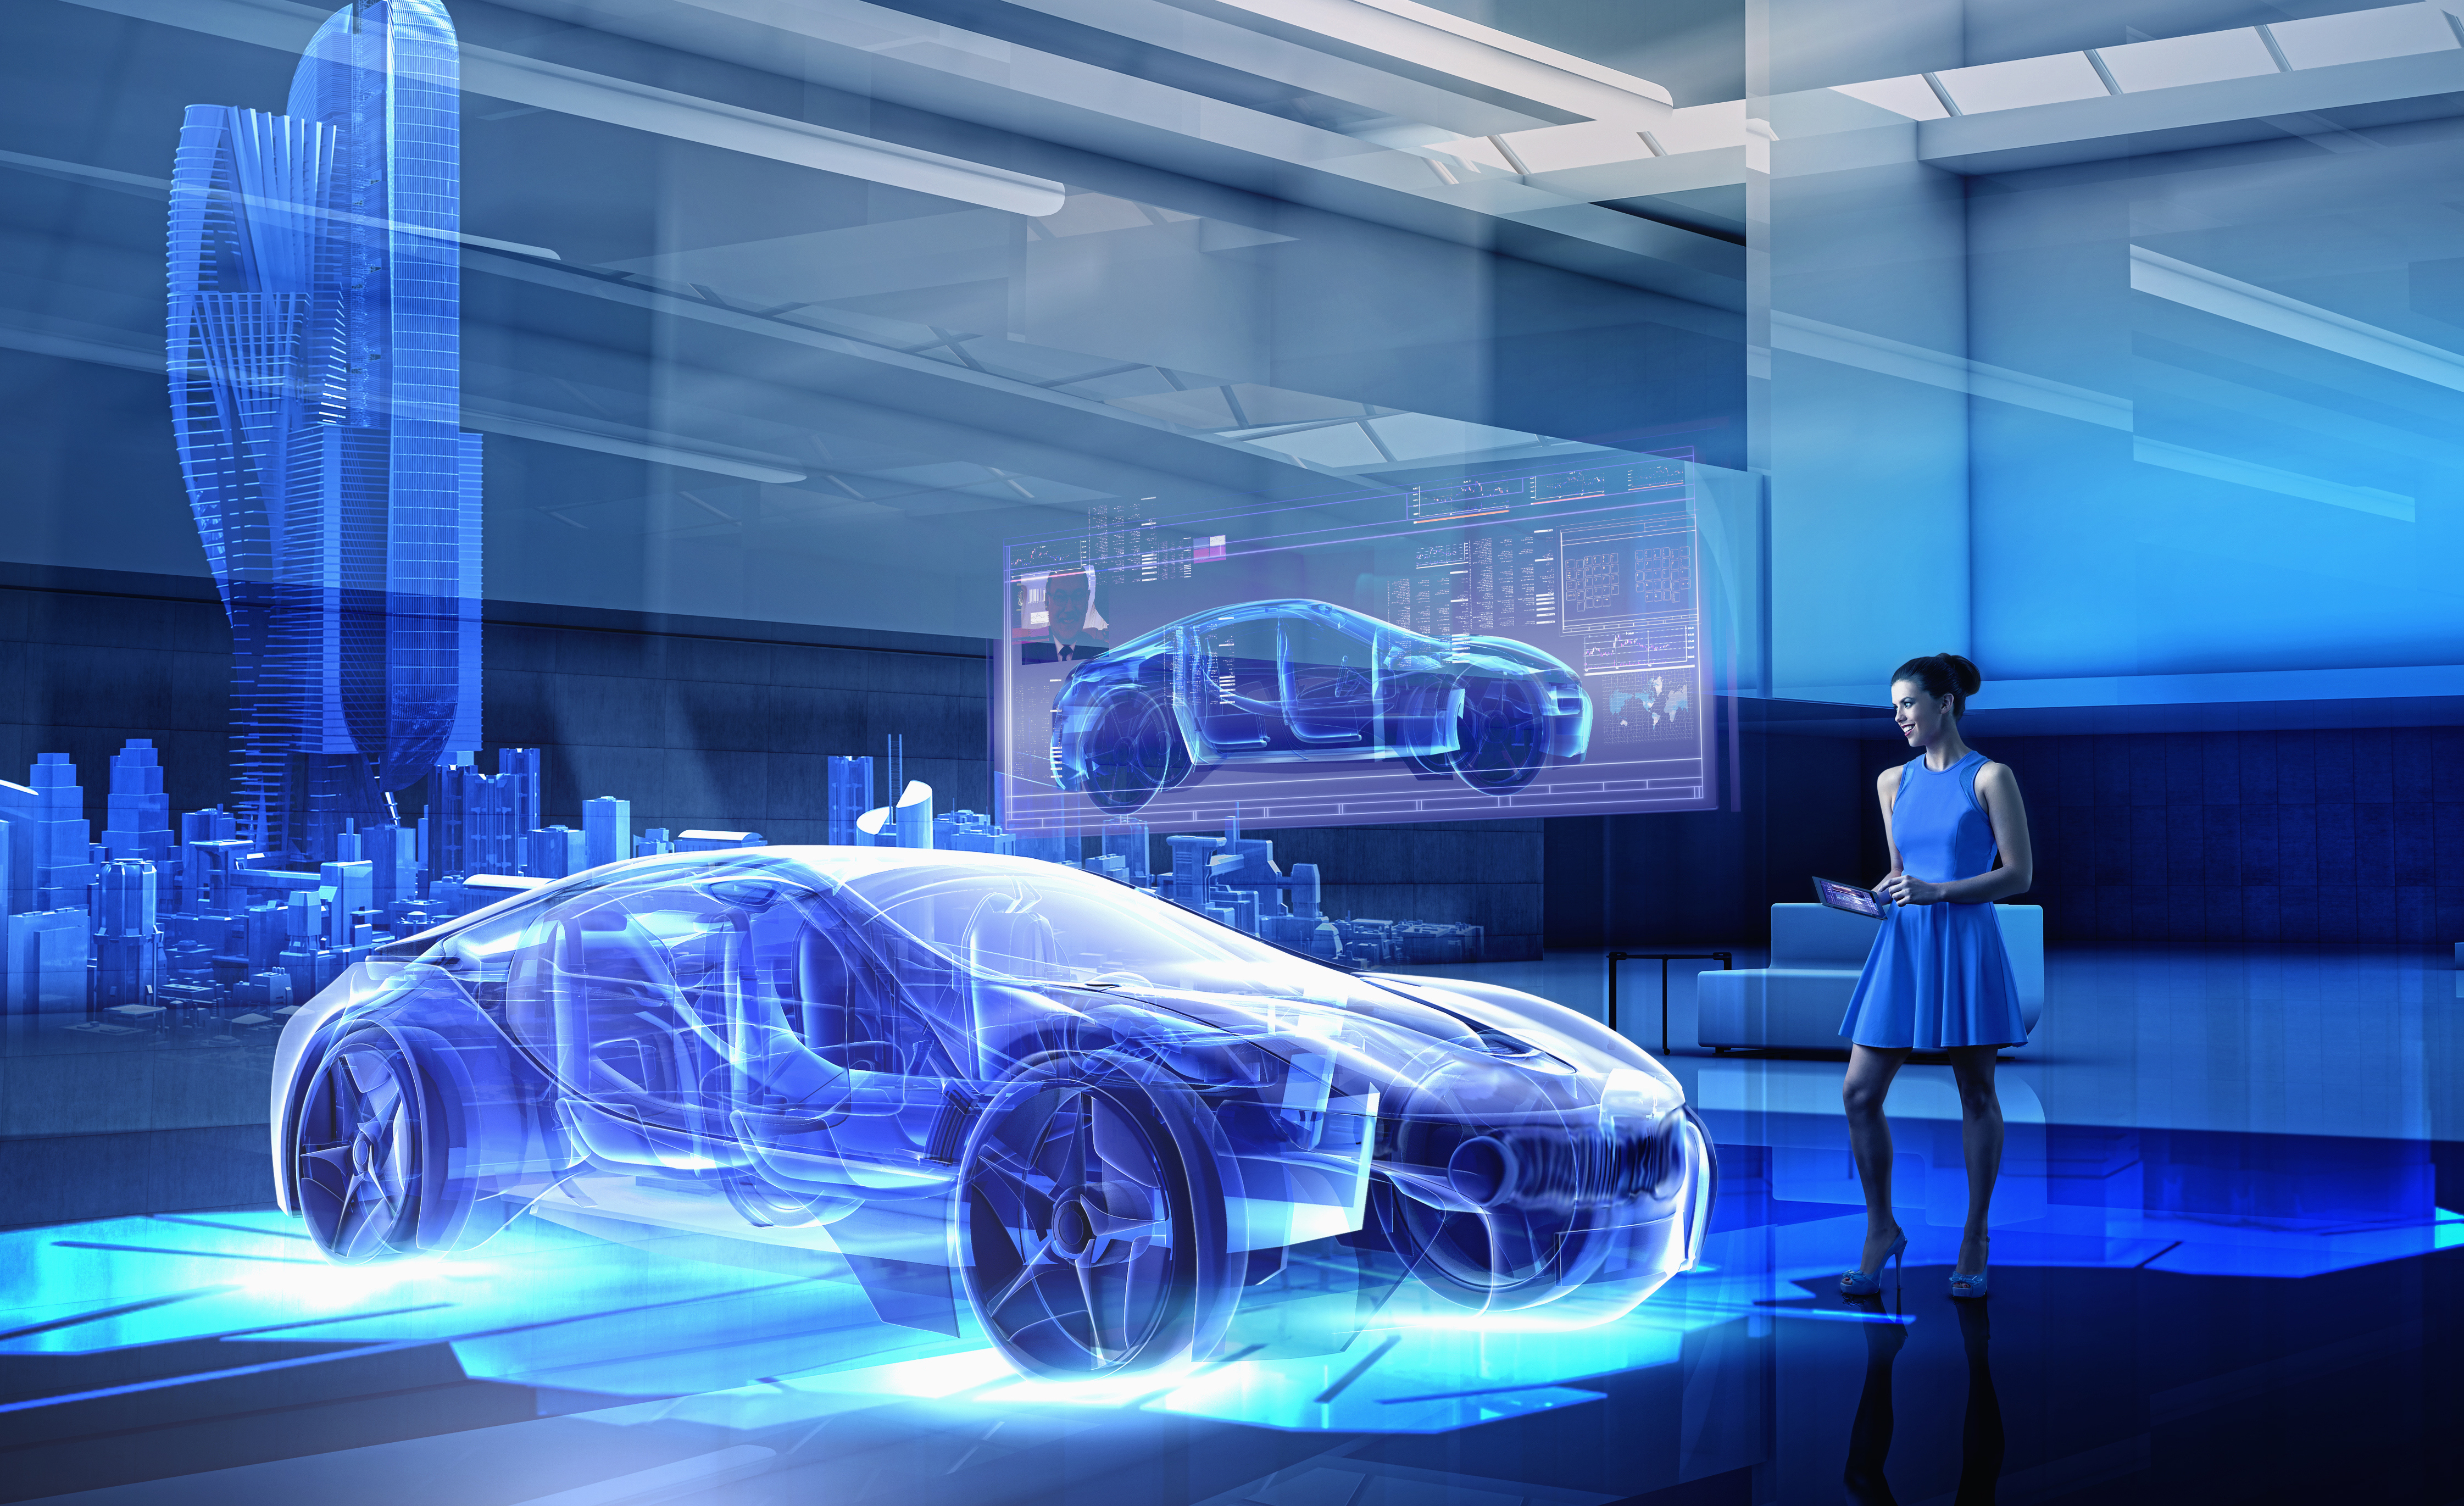 electric vehicles for a cleaner and brighter future